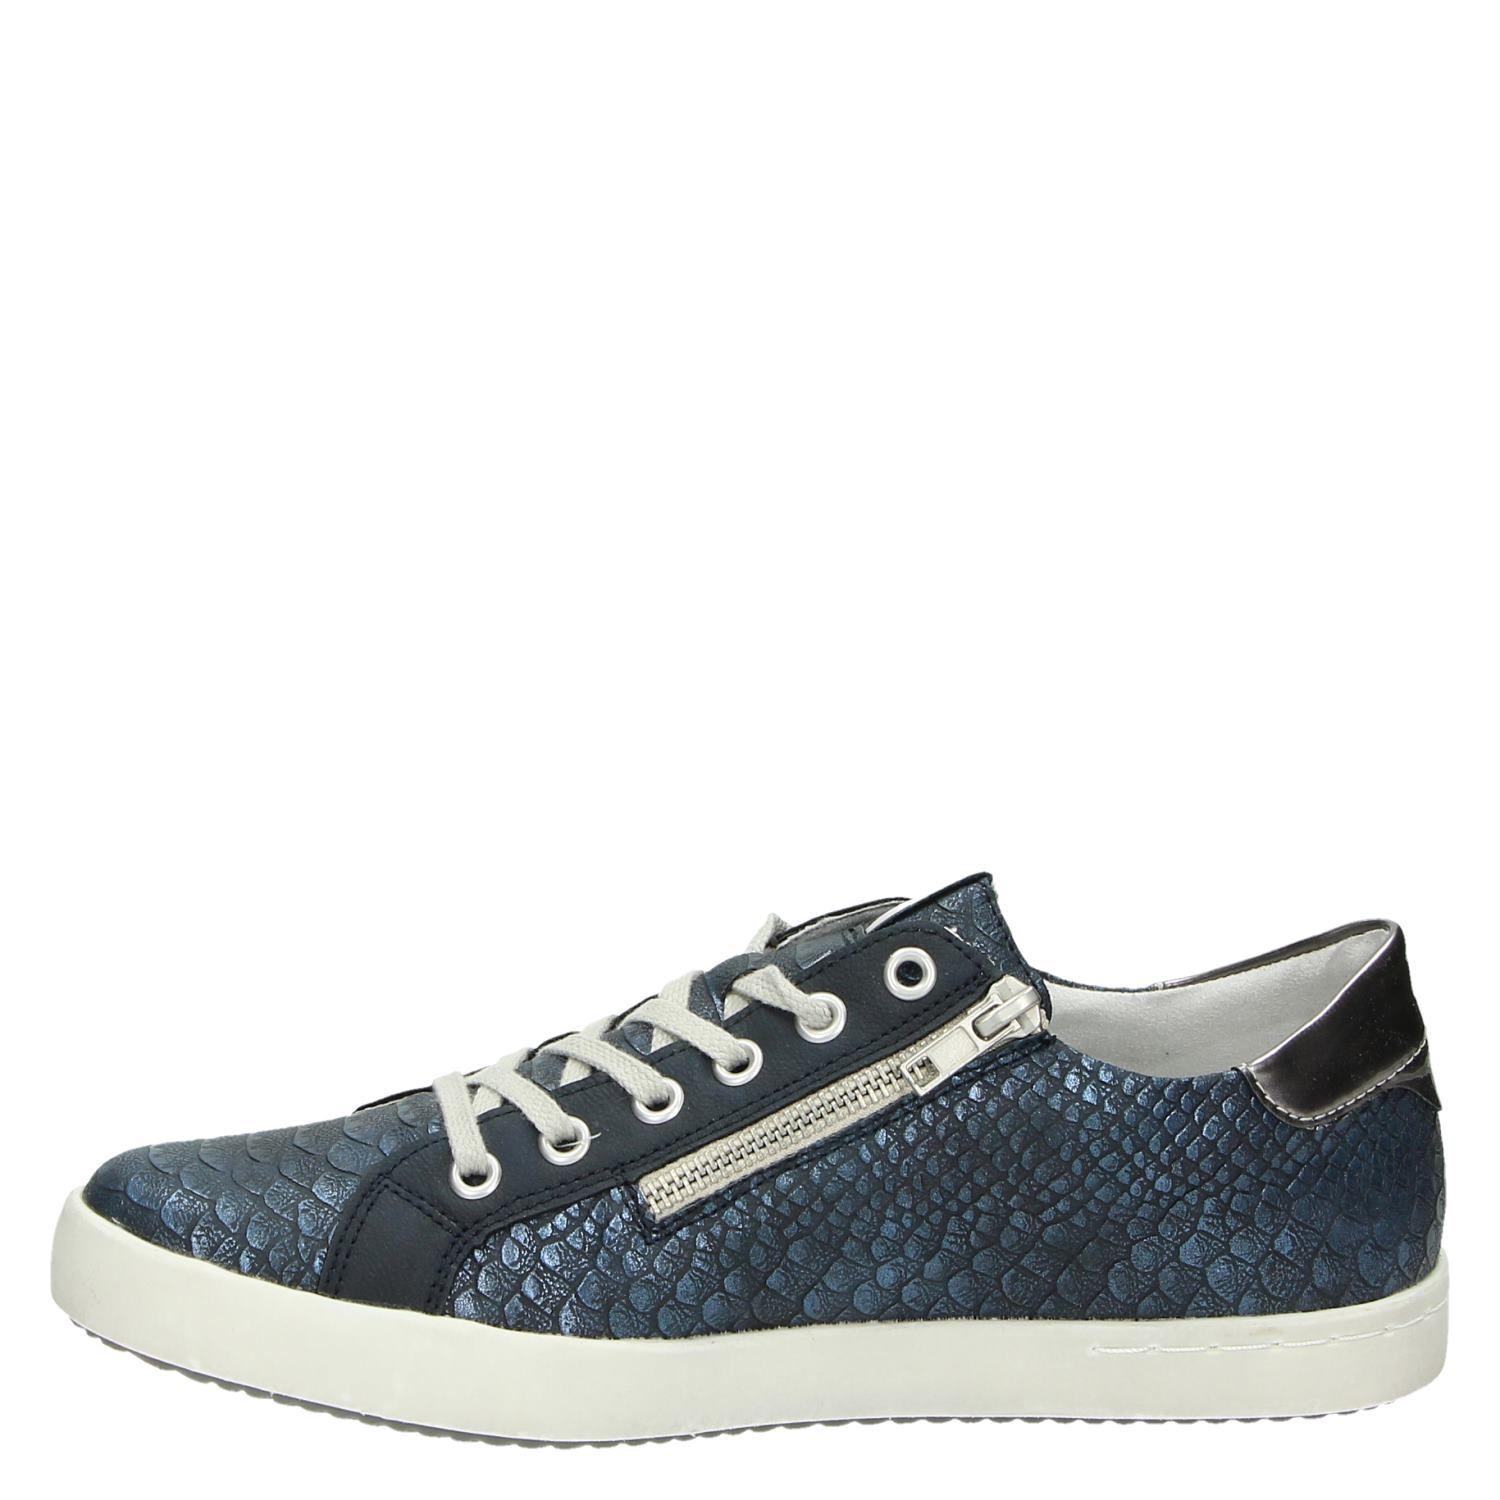 Remonte dames lage sneakers